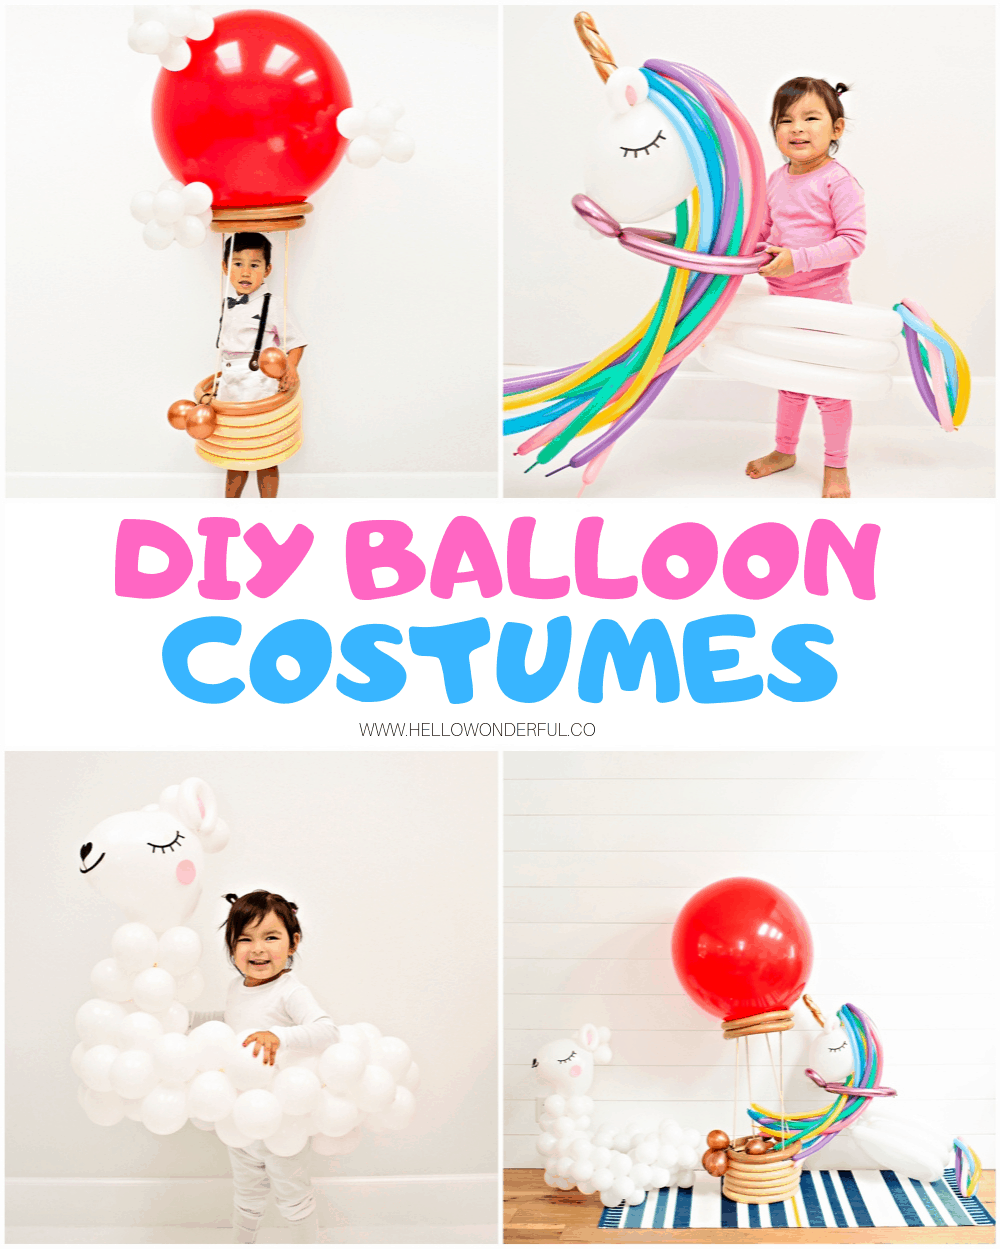 DIY Balloon Costumes